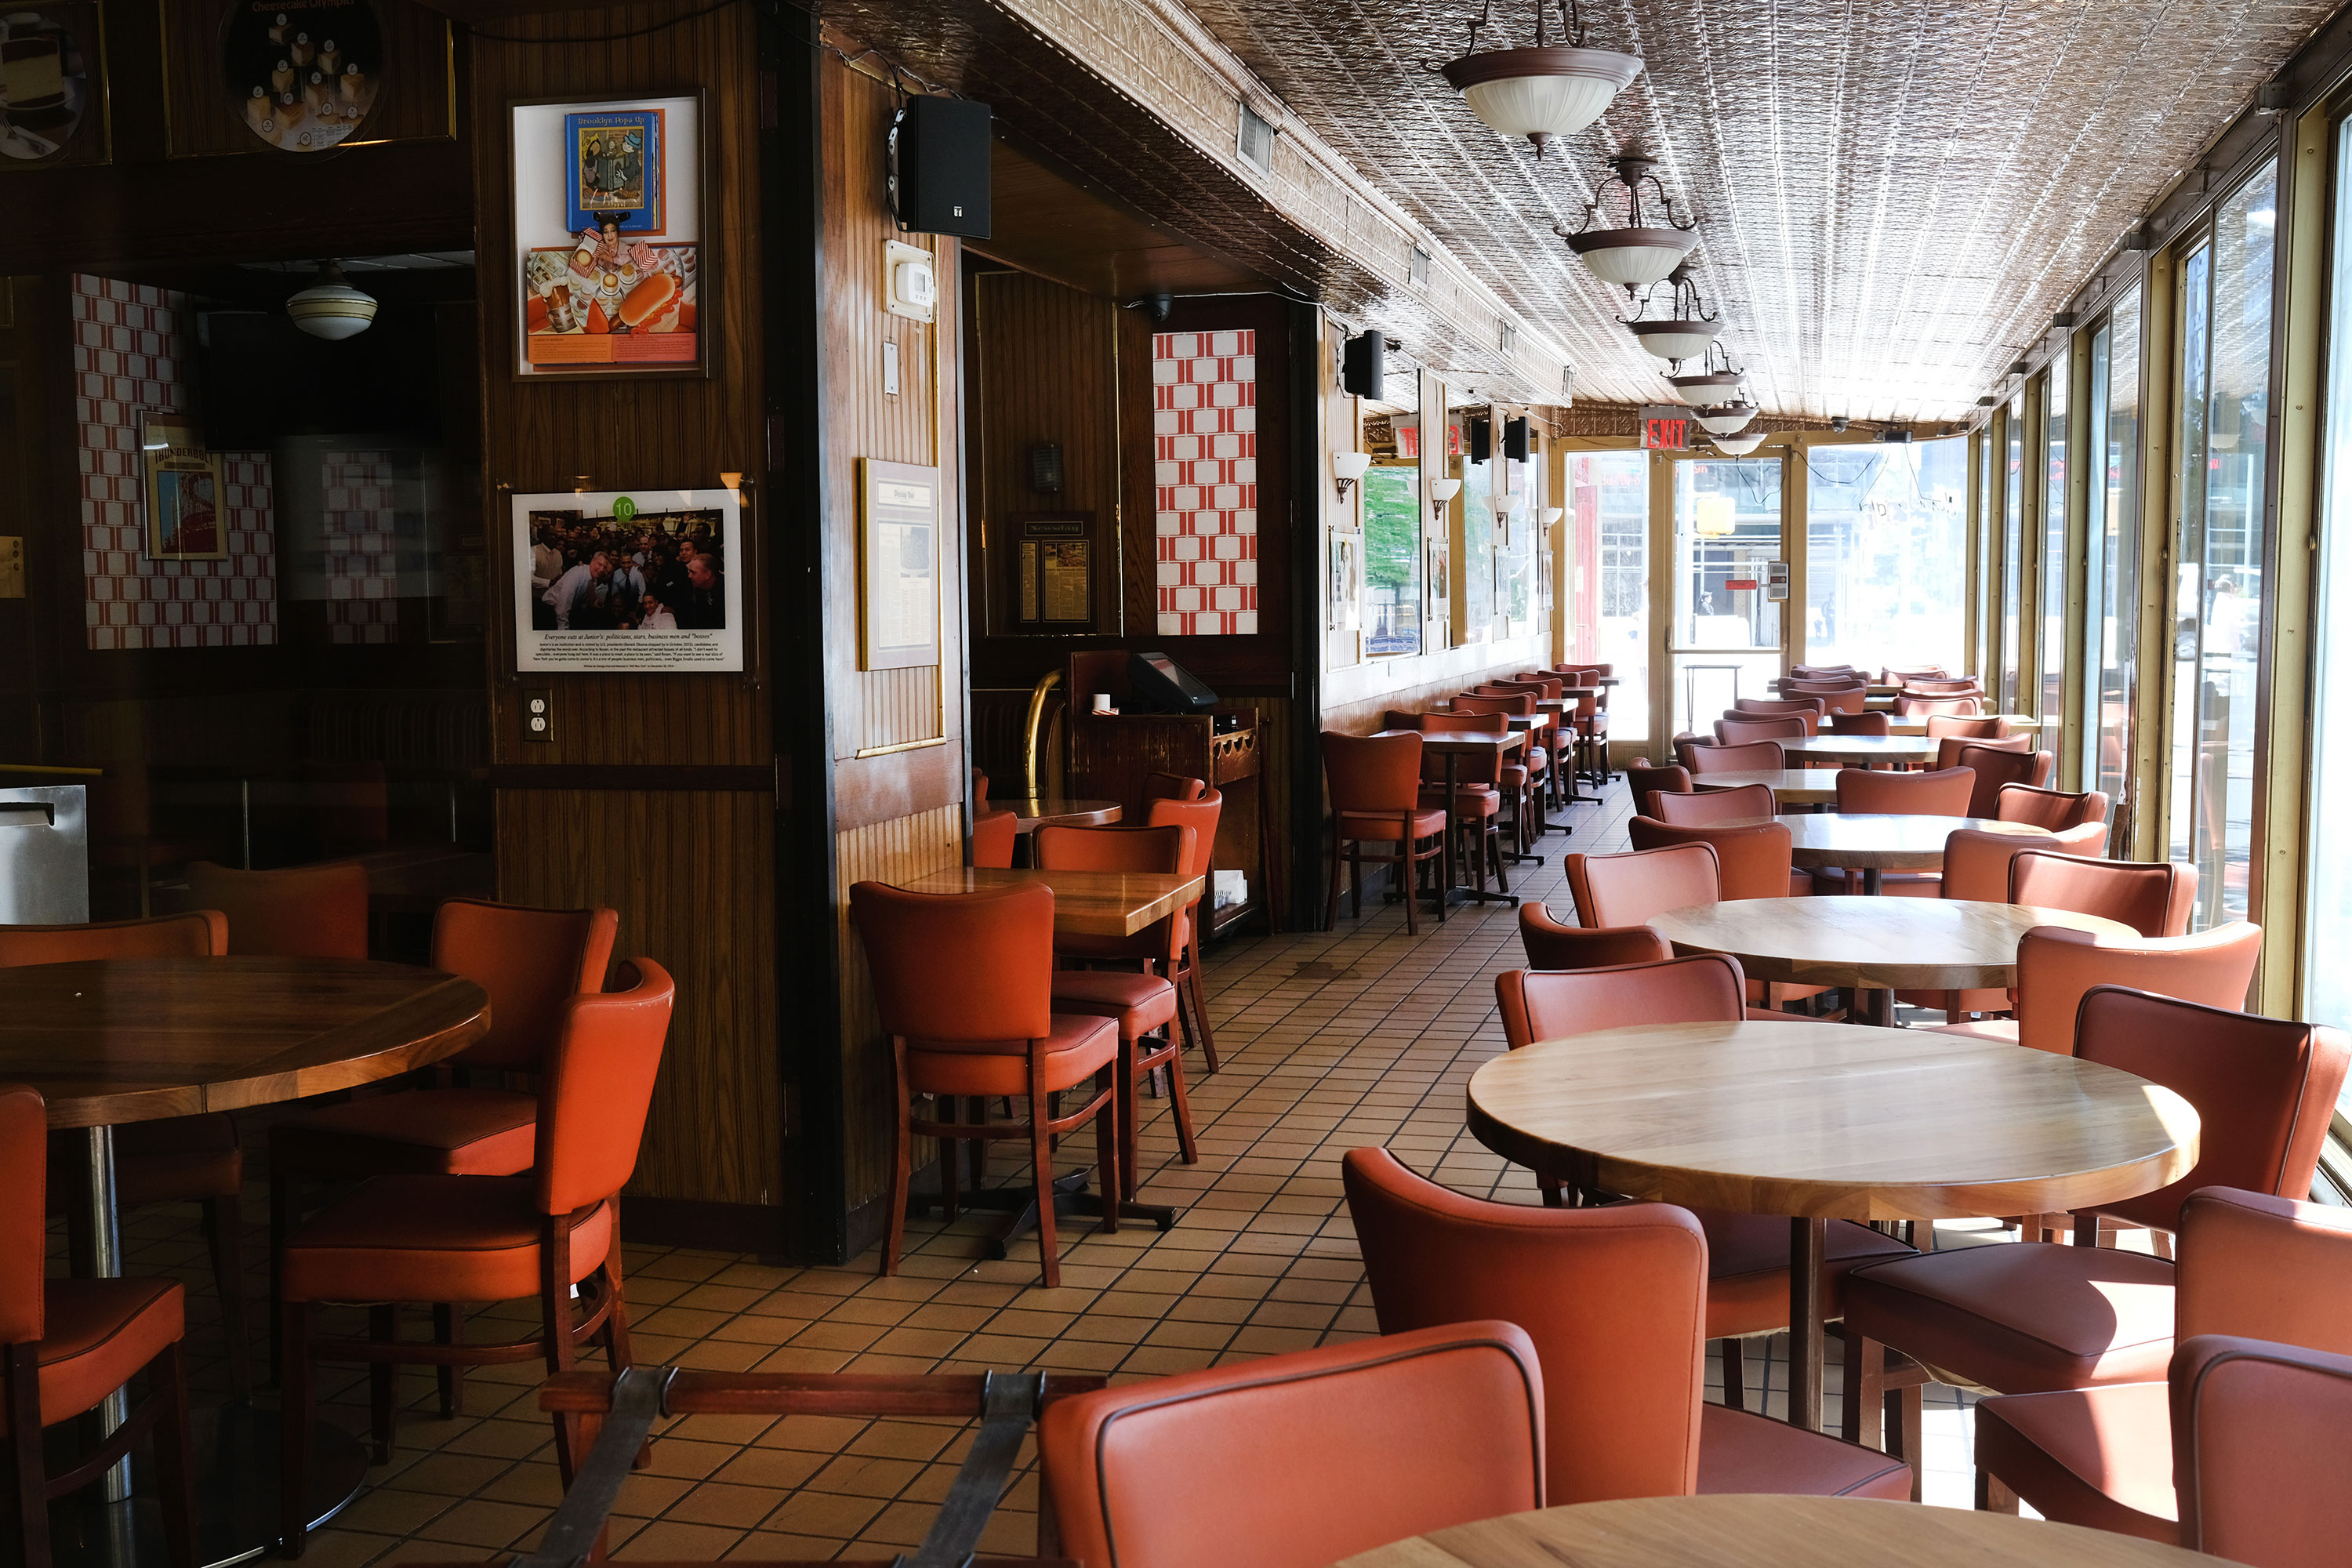 A restaurant stands empty and closed on May 12 in Brooklyn, New York.